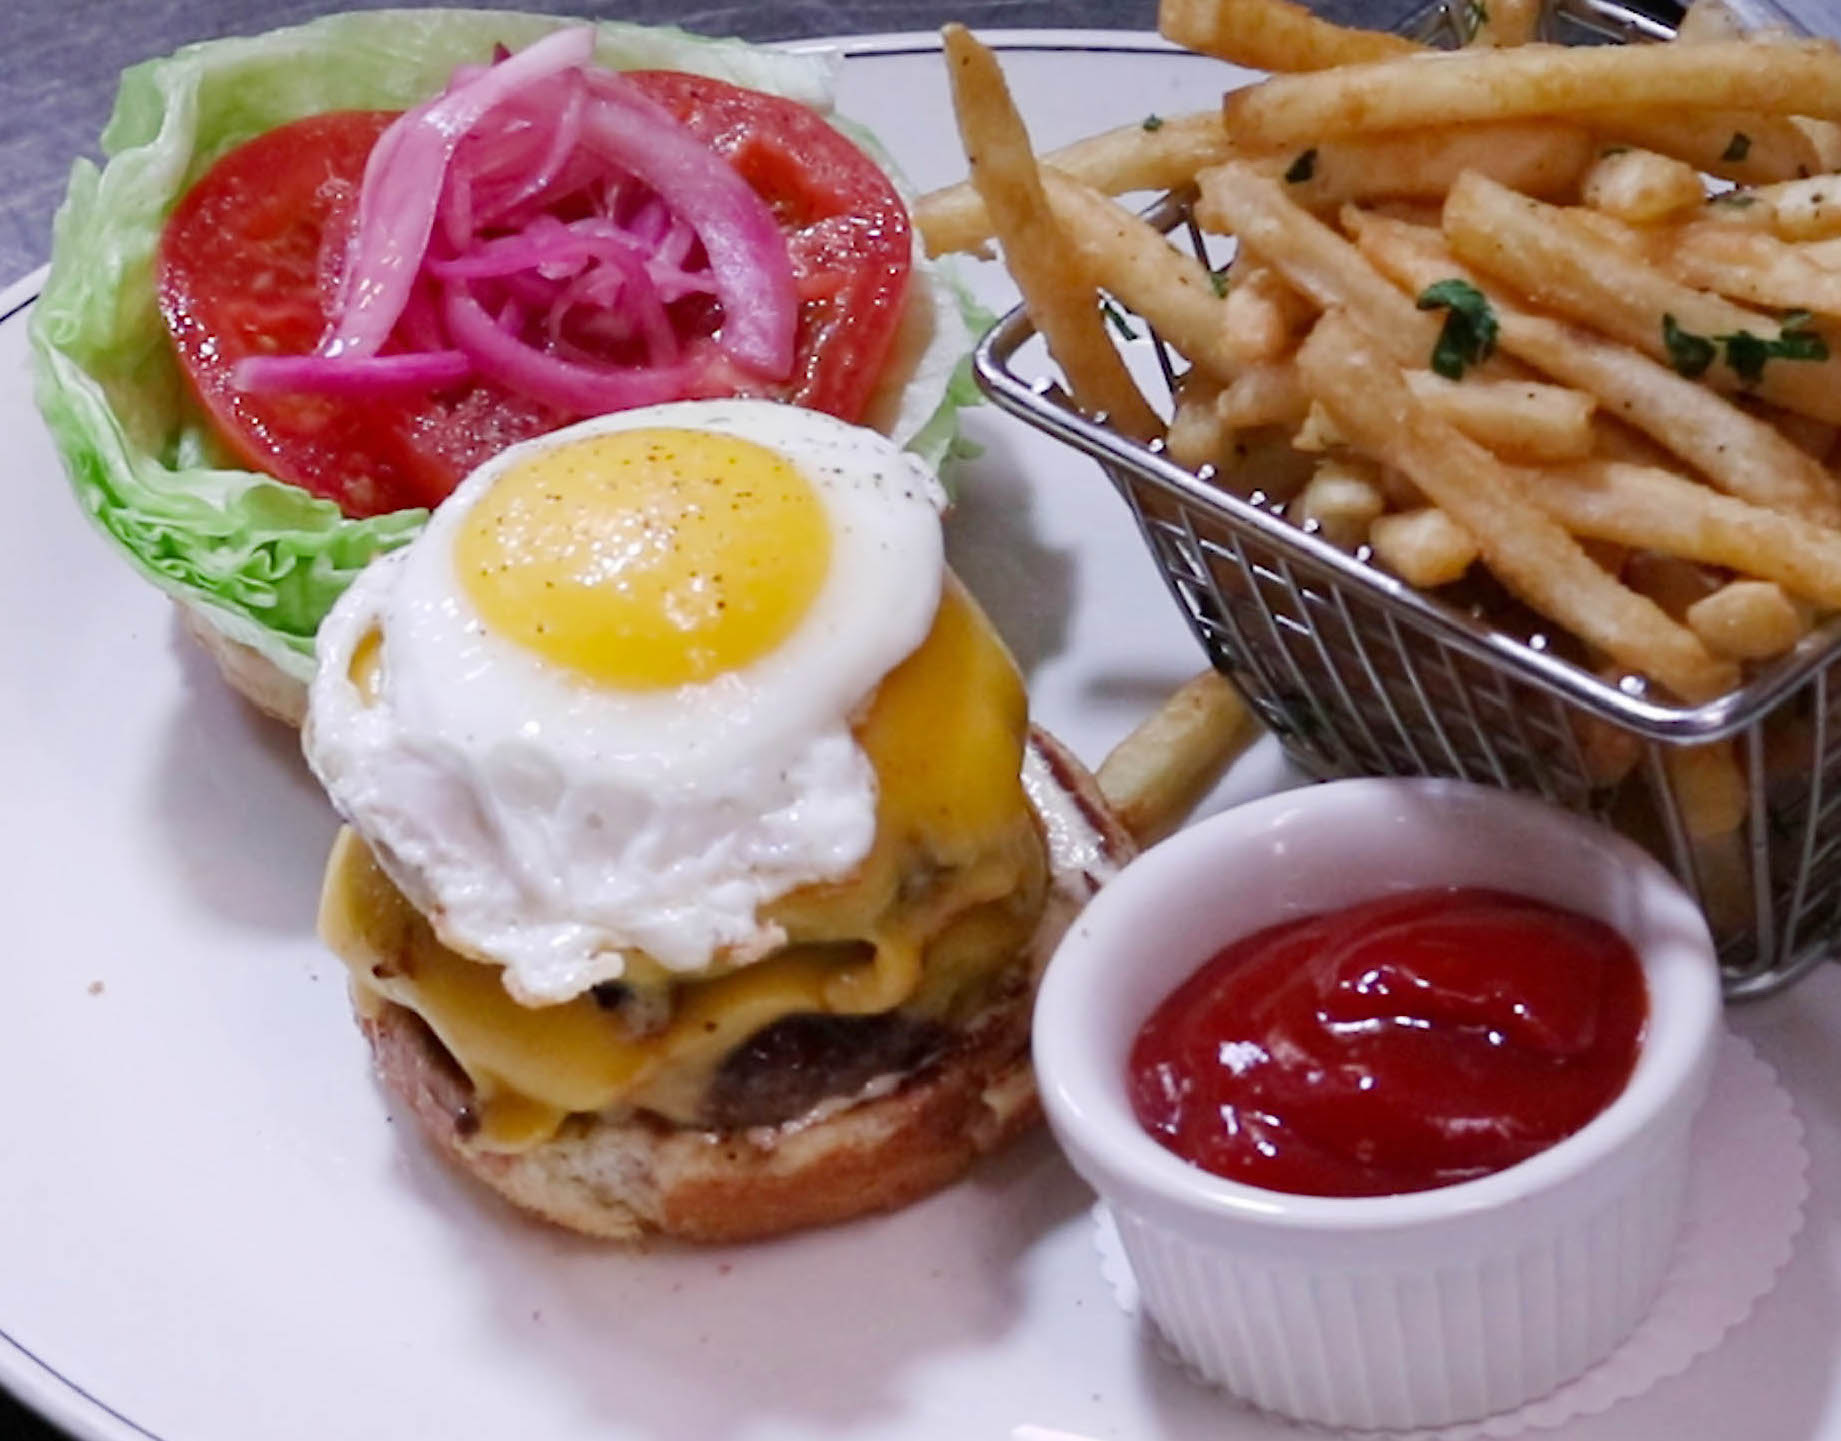 FARMHOUSE BURGER* smashed beef patty topped with American cheese, smoked bacon, pickled onion, fried egg